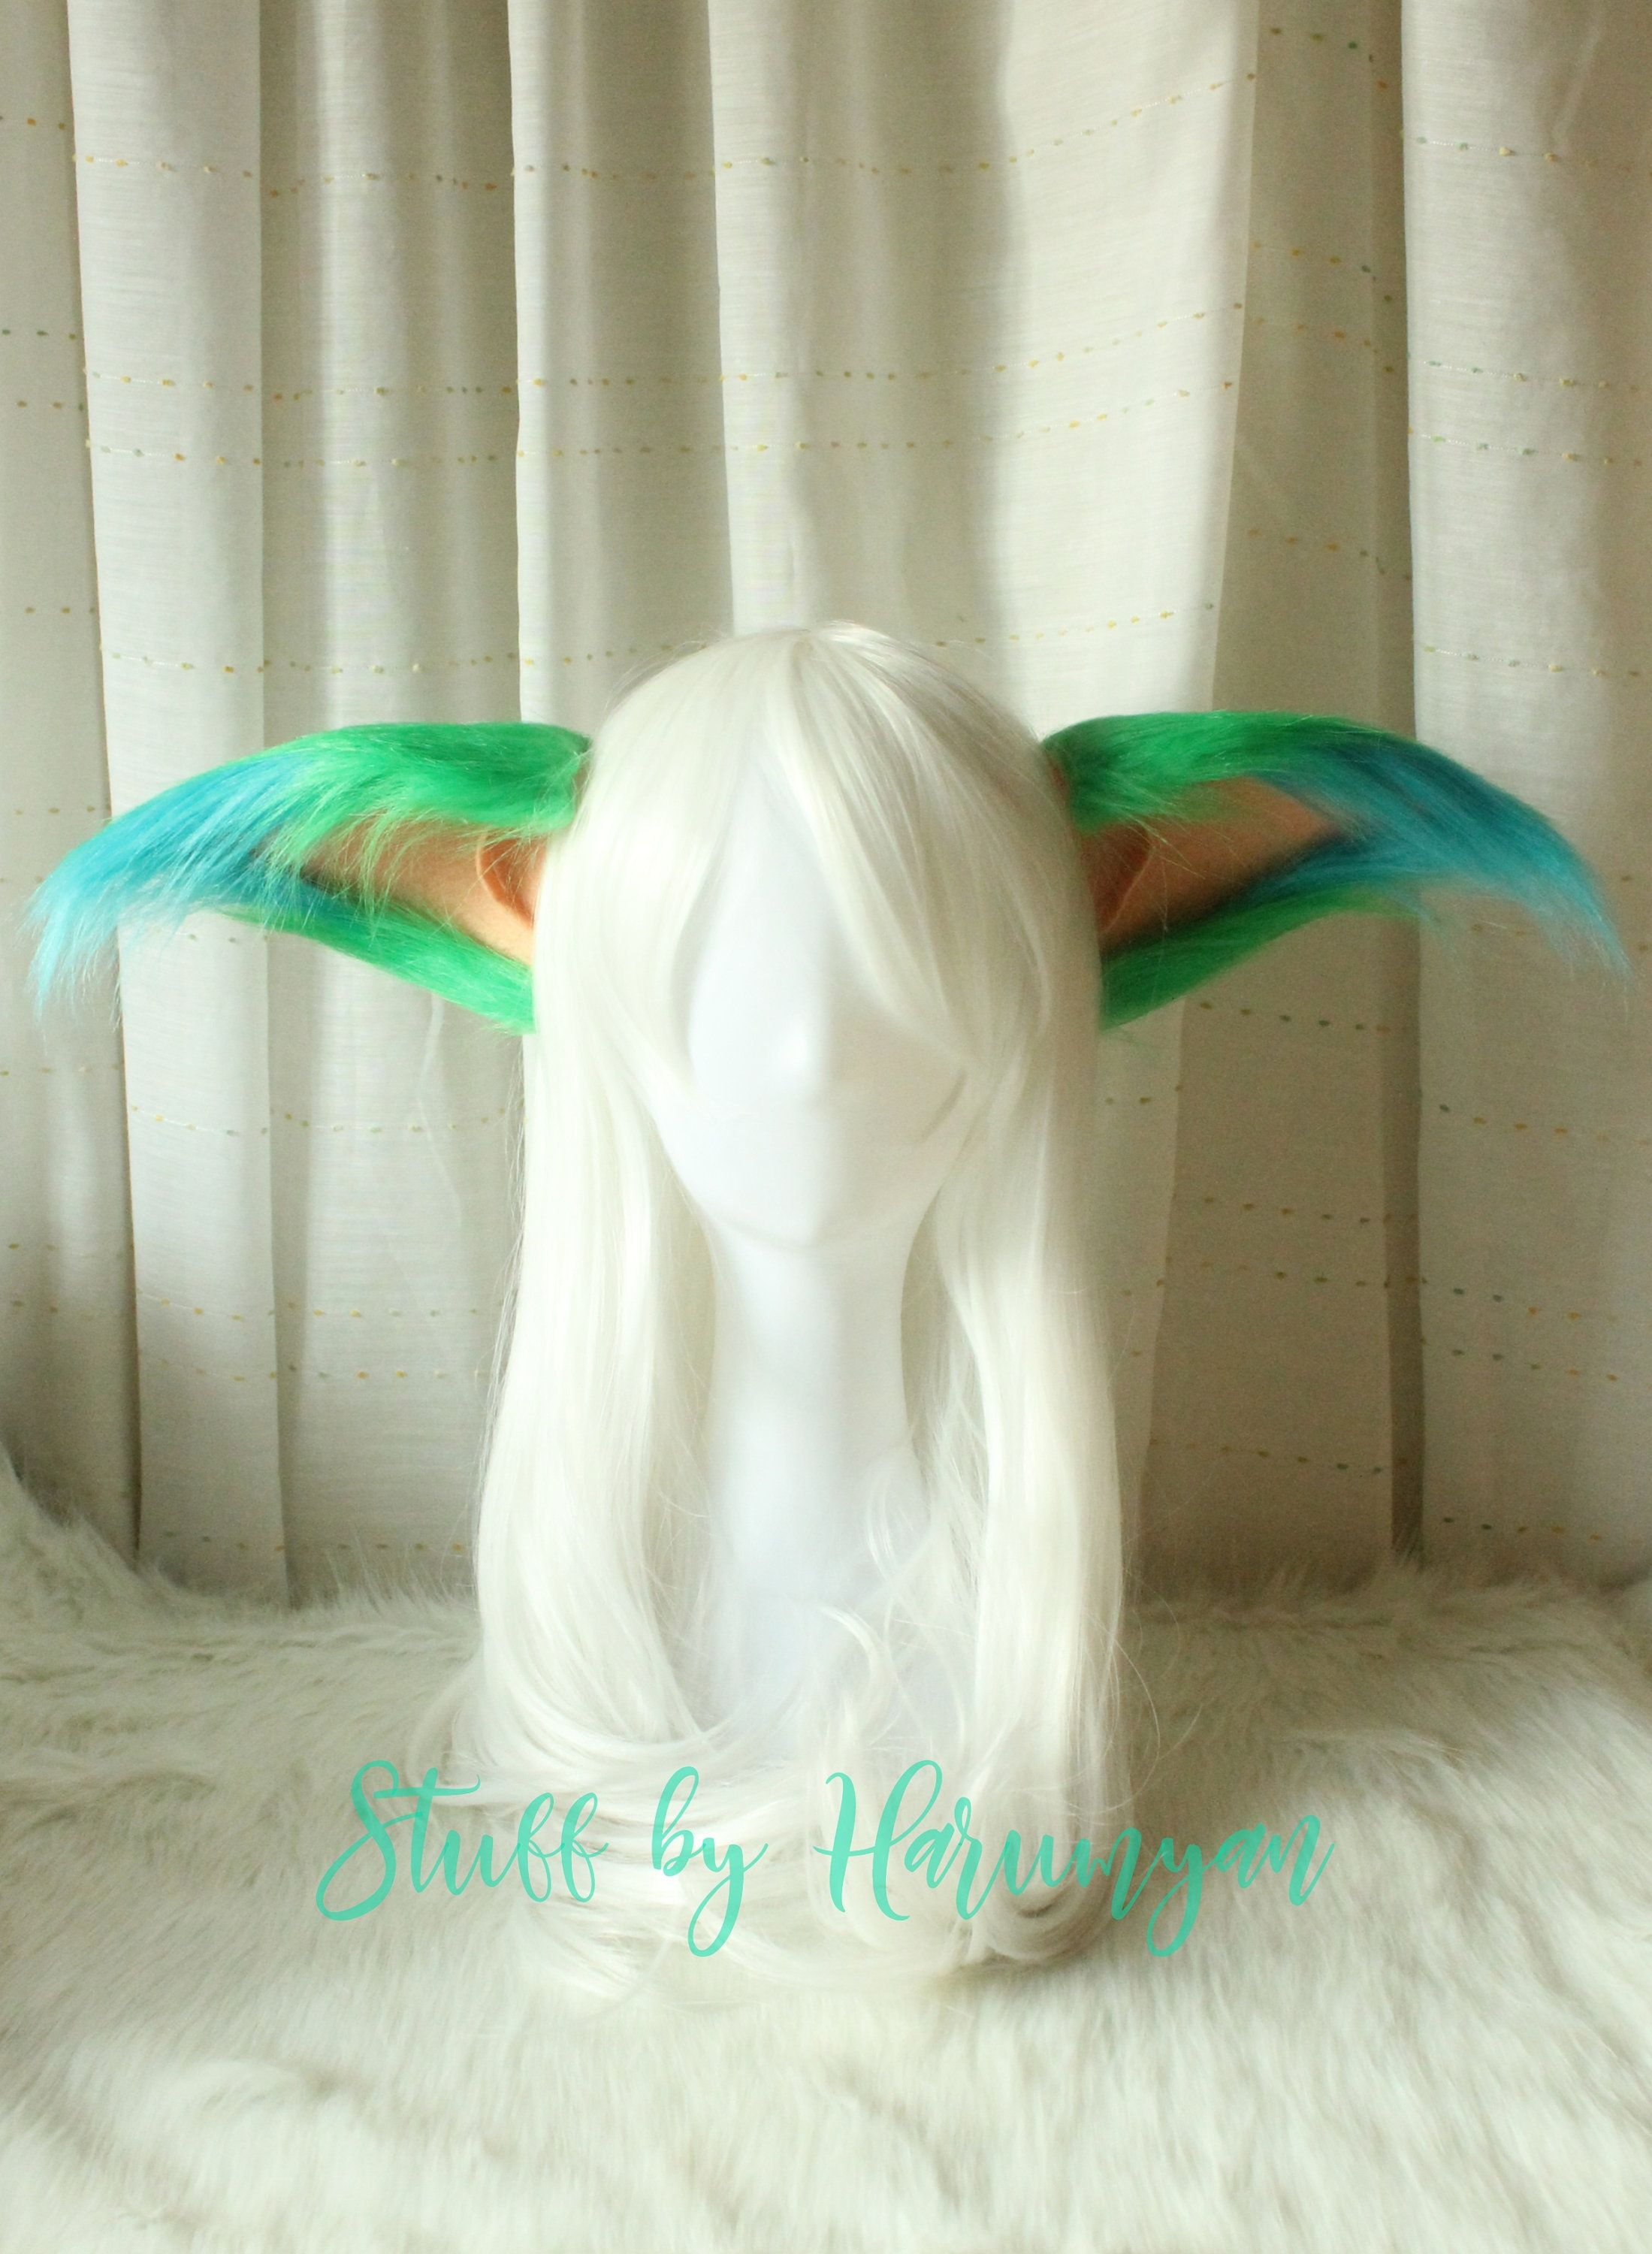 Details about League of Legends LOL Star Guardian Ahri Cosplay Shoes High Heel Two Version New